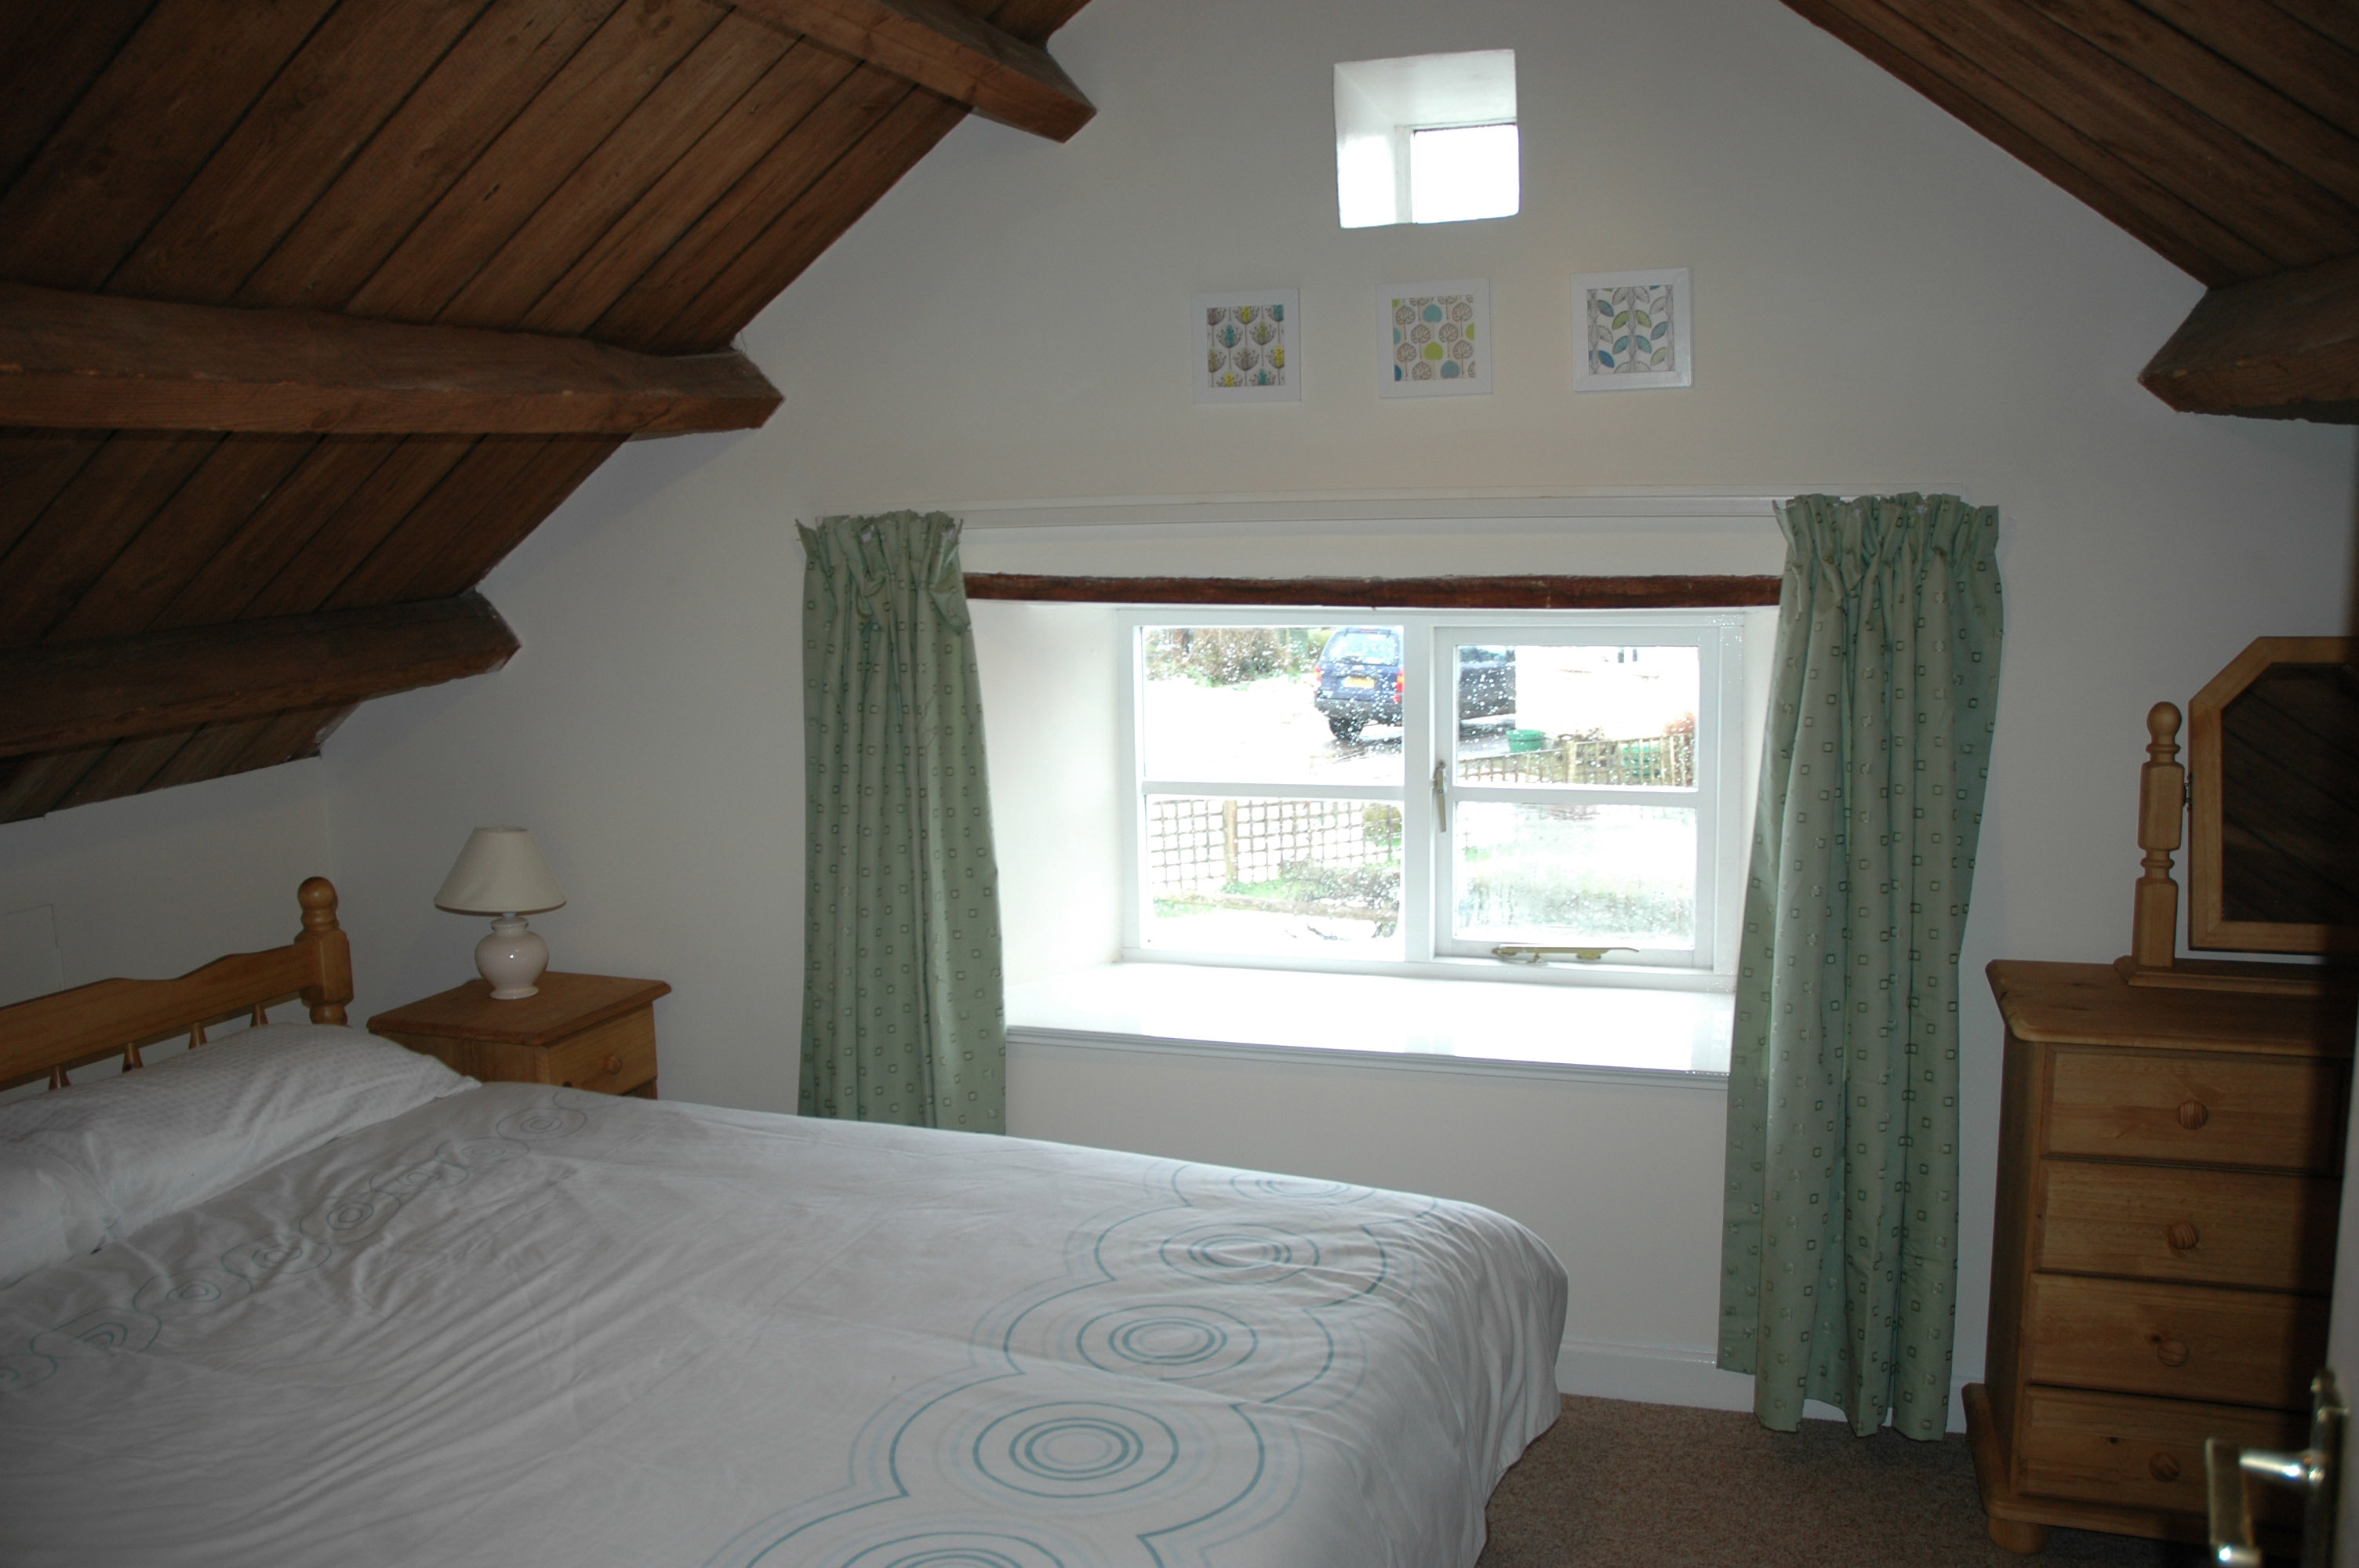 Self-catering cottages in Dorset - Lancombes House